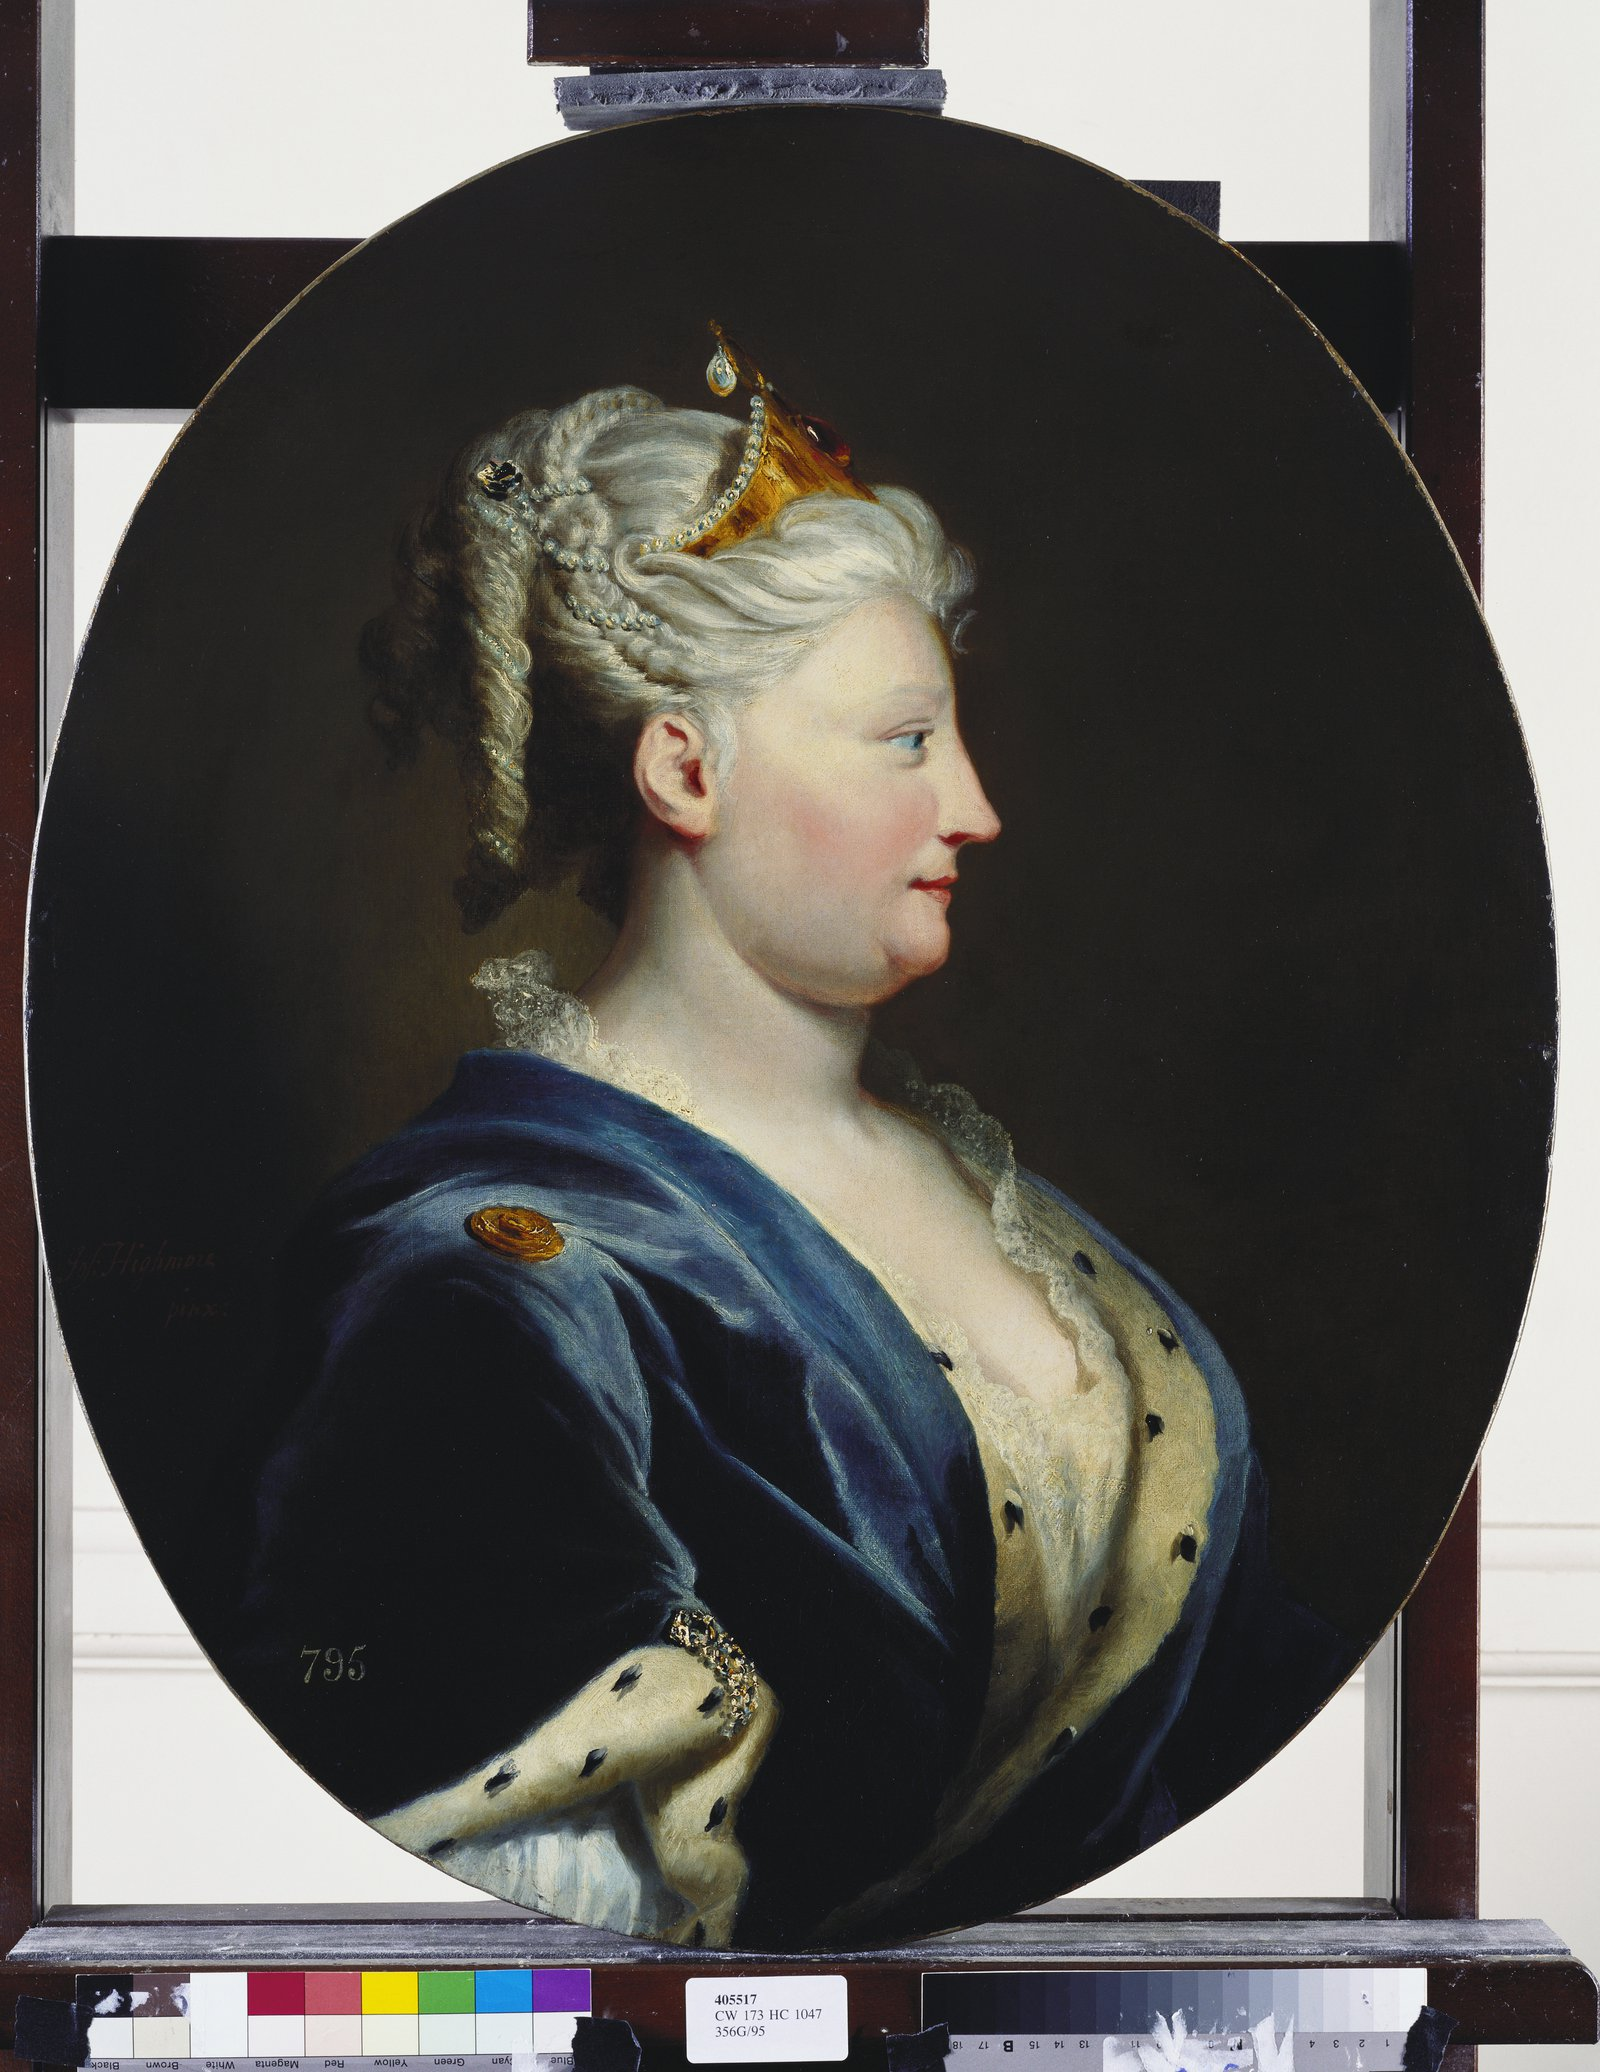 Queen Caroline of Ansbach, Joseph Highmore c.1735, Royal Collection Trust  c Her Majesty Queen Elizabeth II 2017